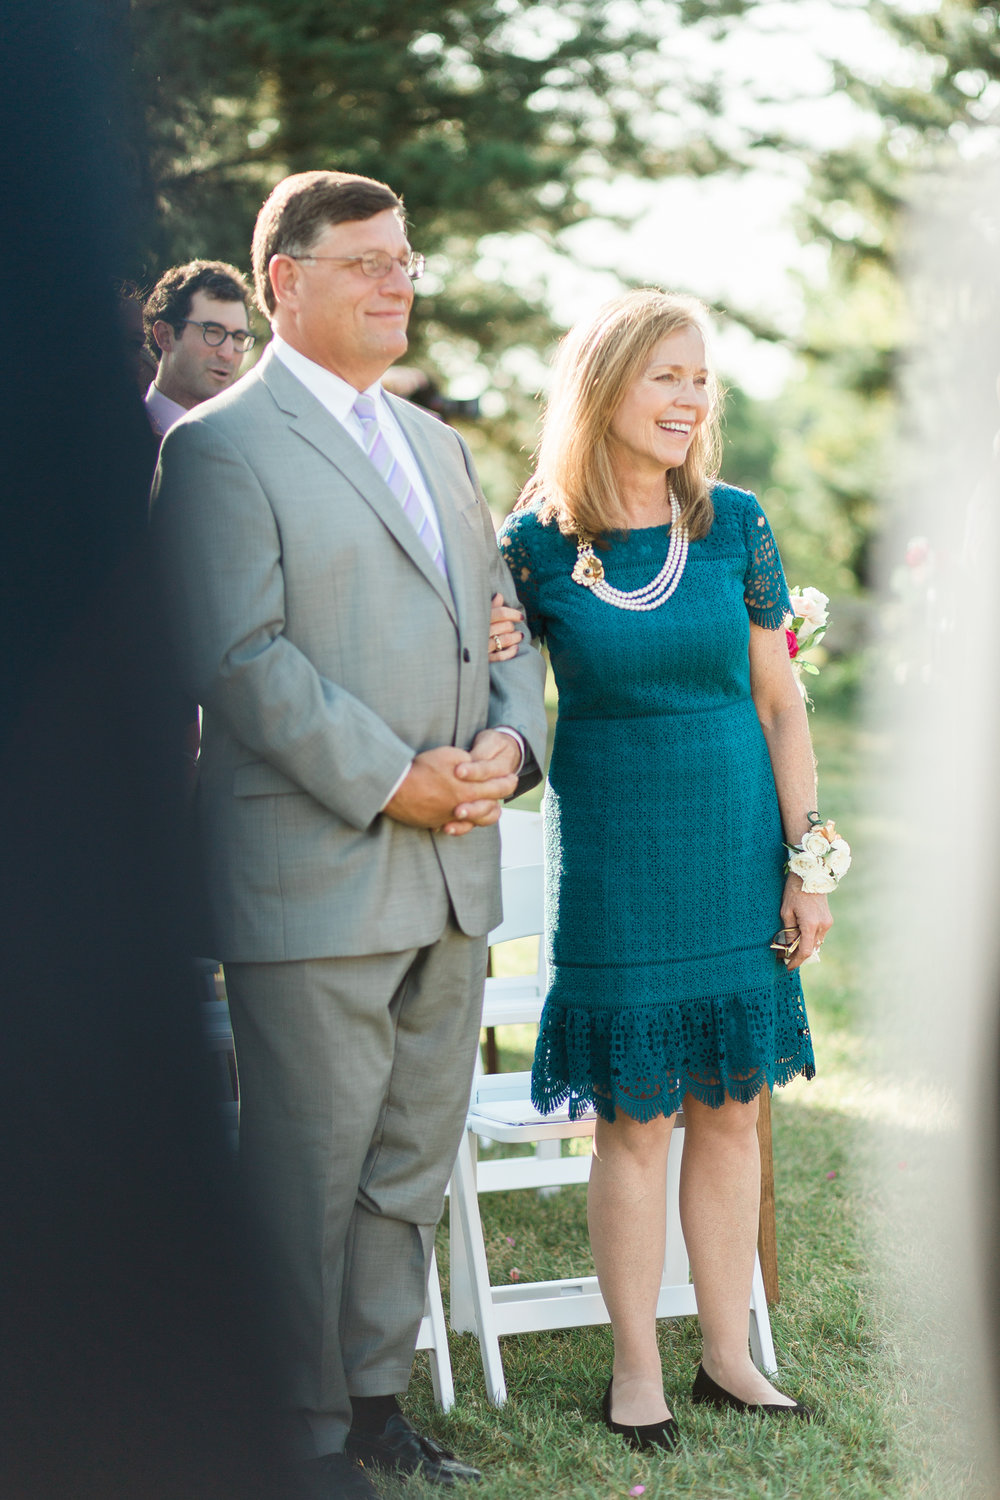 Groom's mom and dad at little turtle club outdoor ceremony in columbus ohio